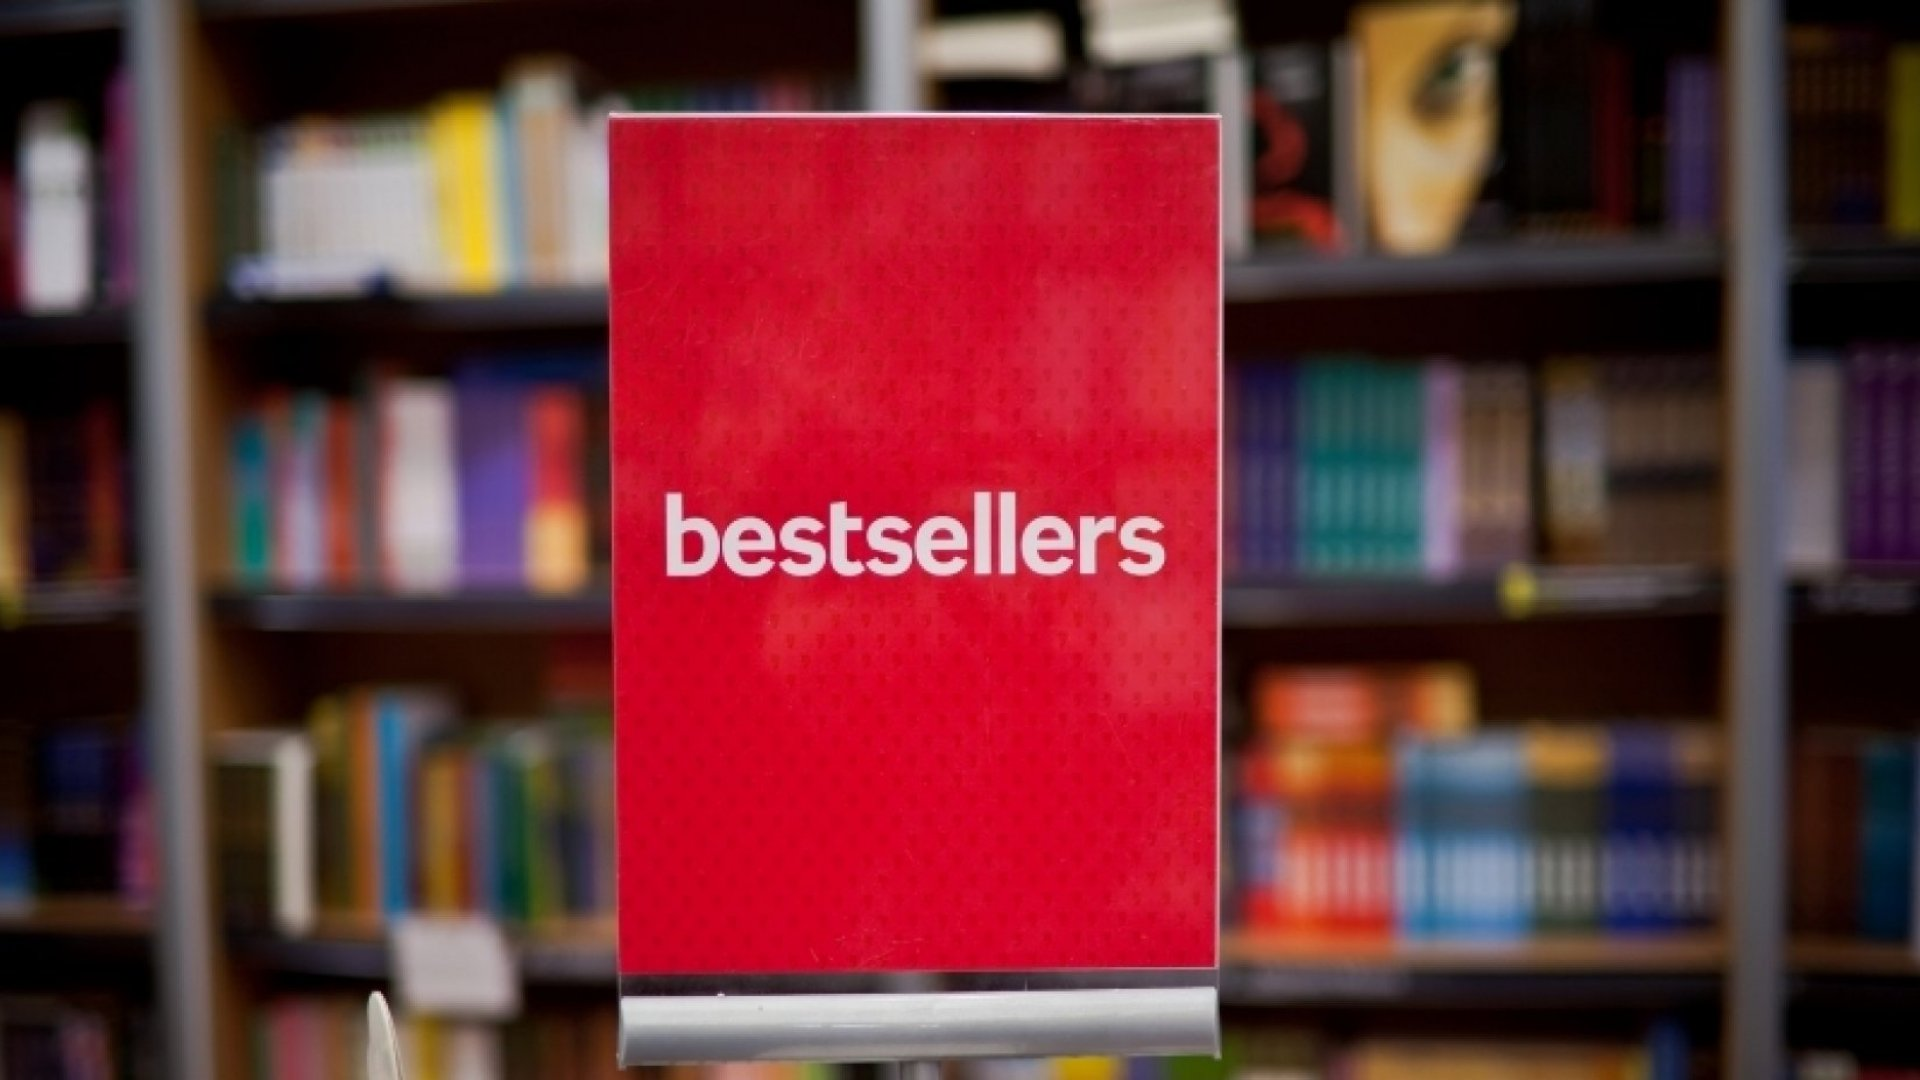 Amazon's Latest Venture: No Competition (Yet) for Great Bookstores of the World